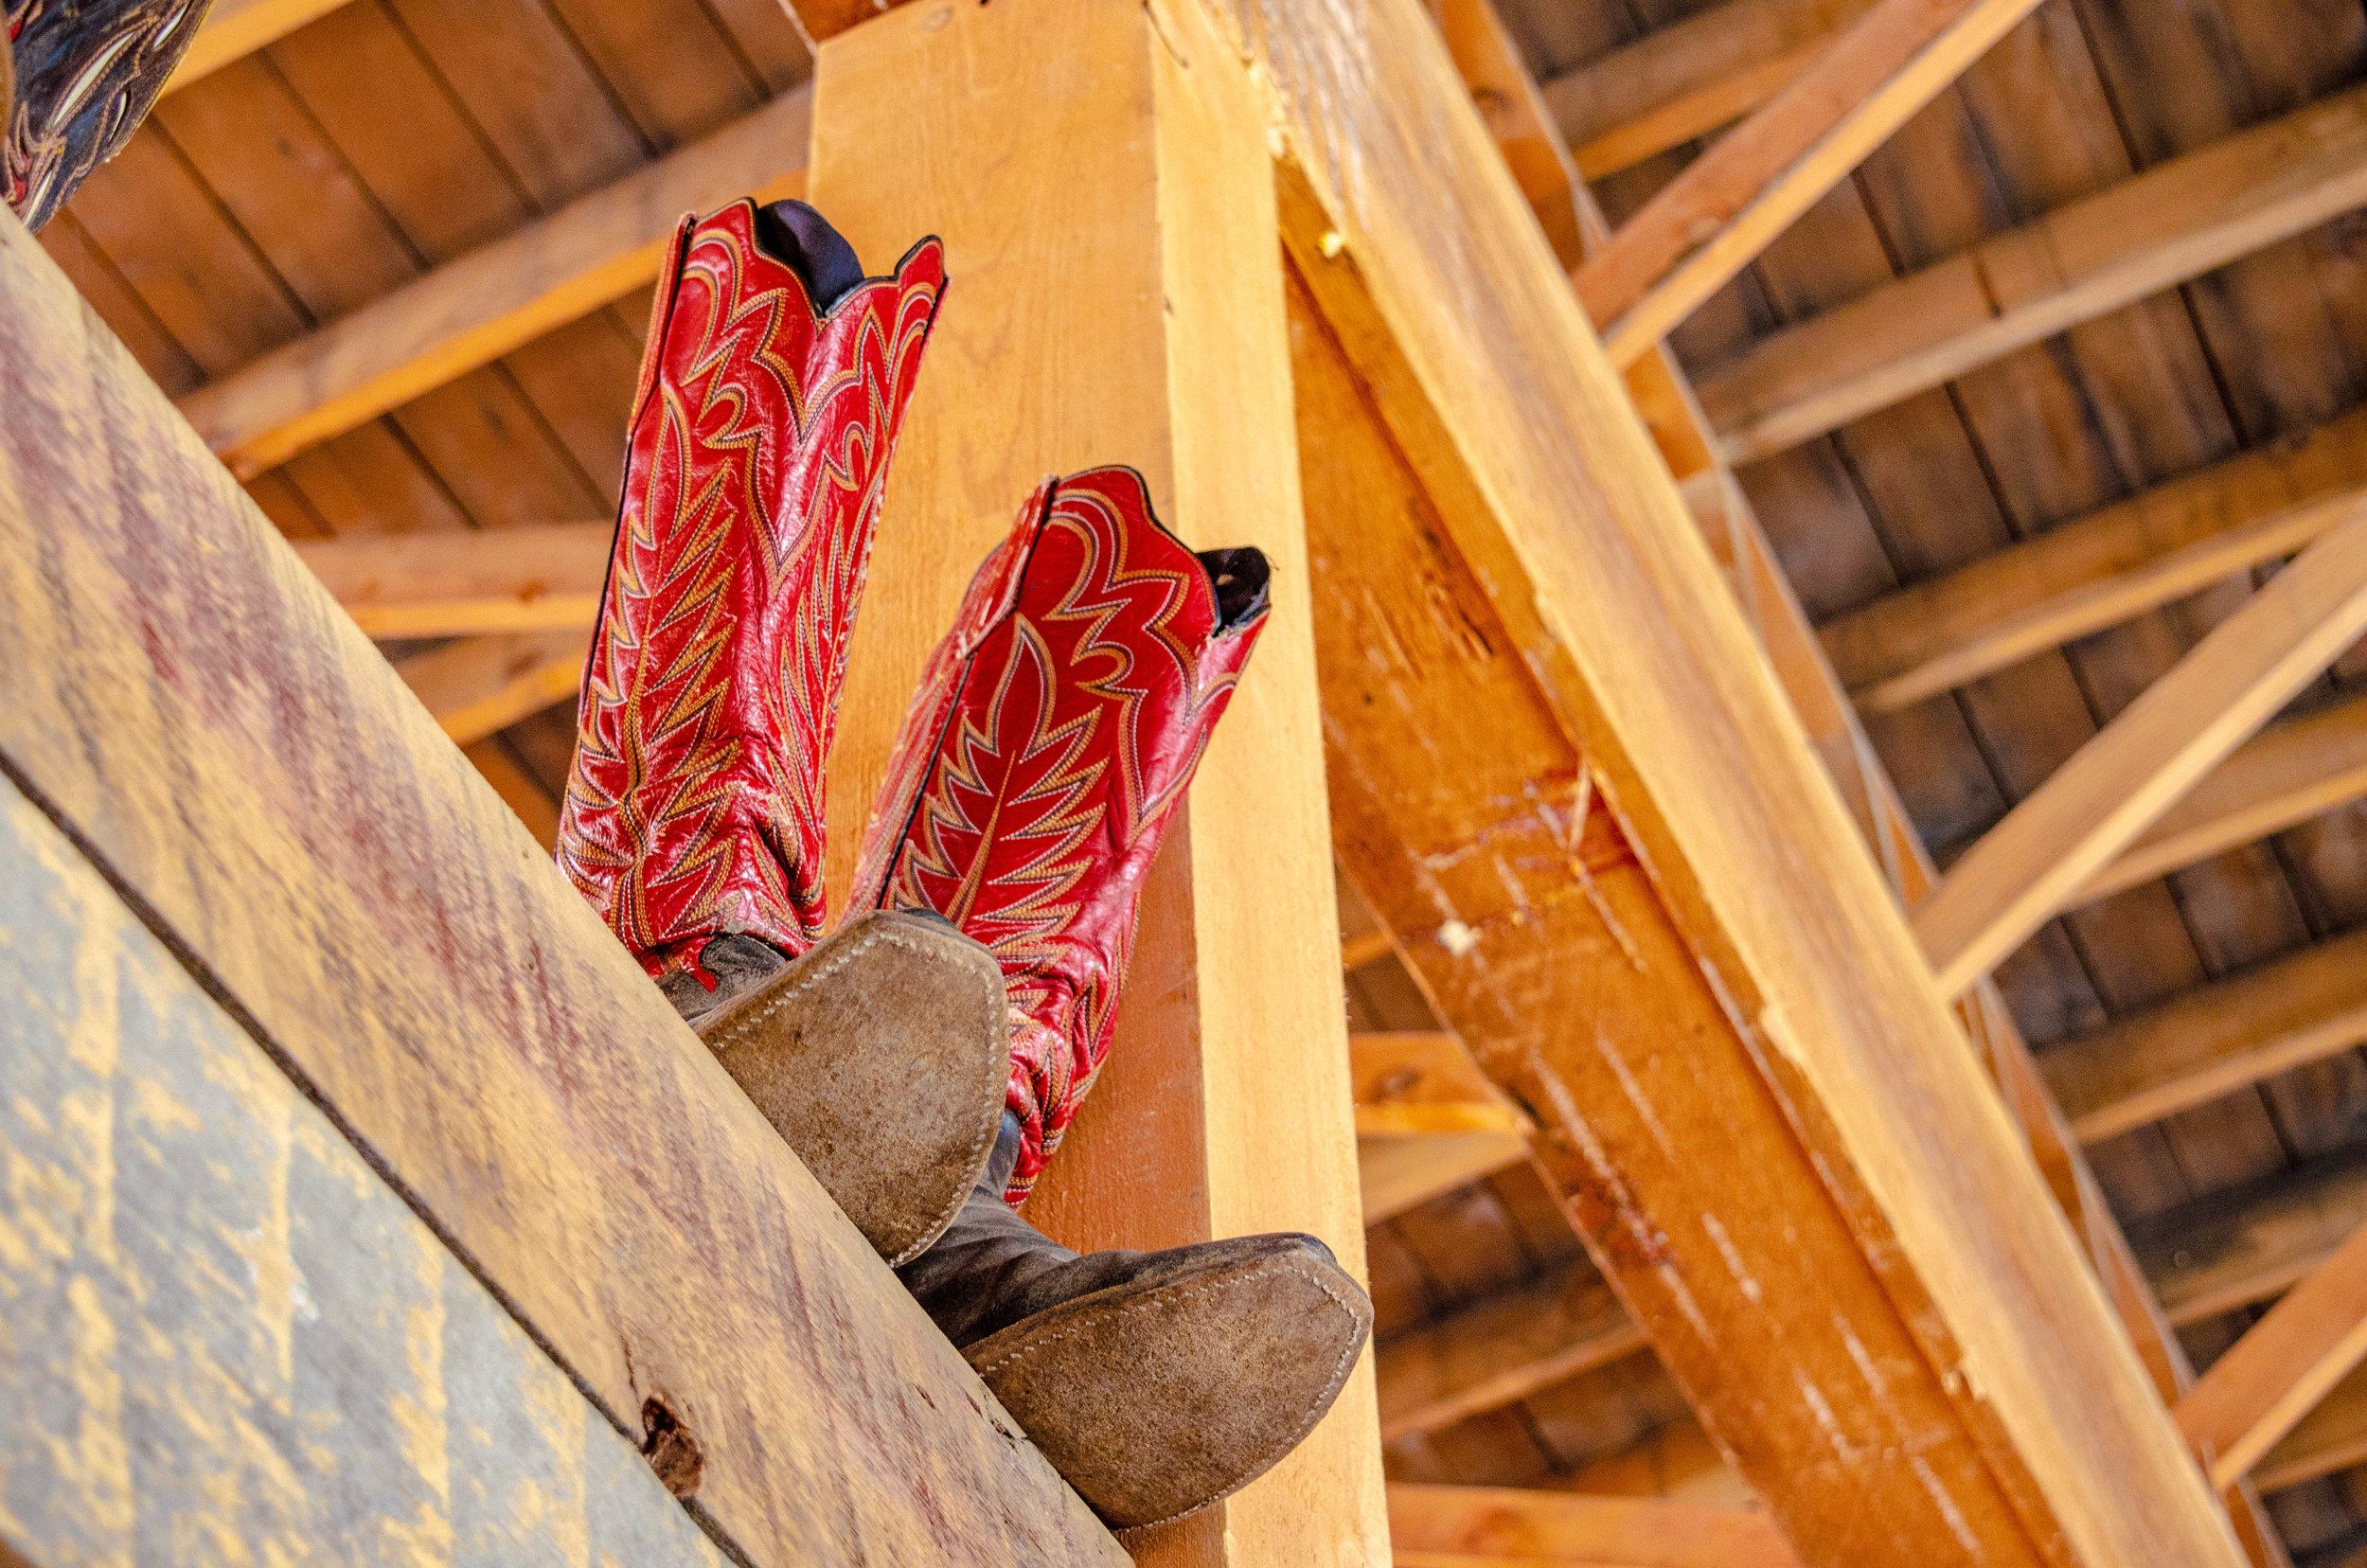 Western Boot Making - Three weeks of all things western boot making